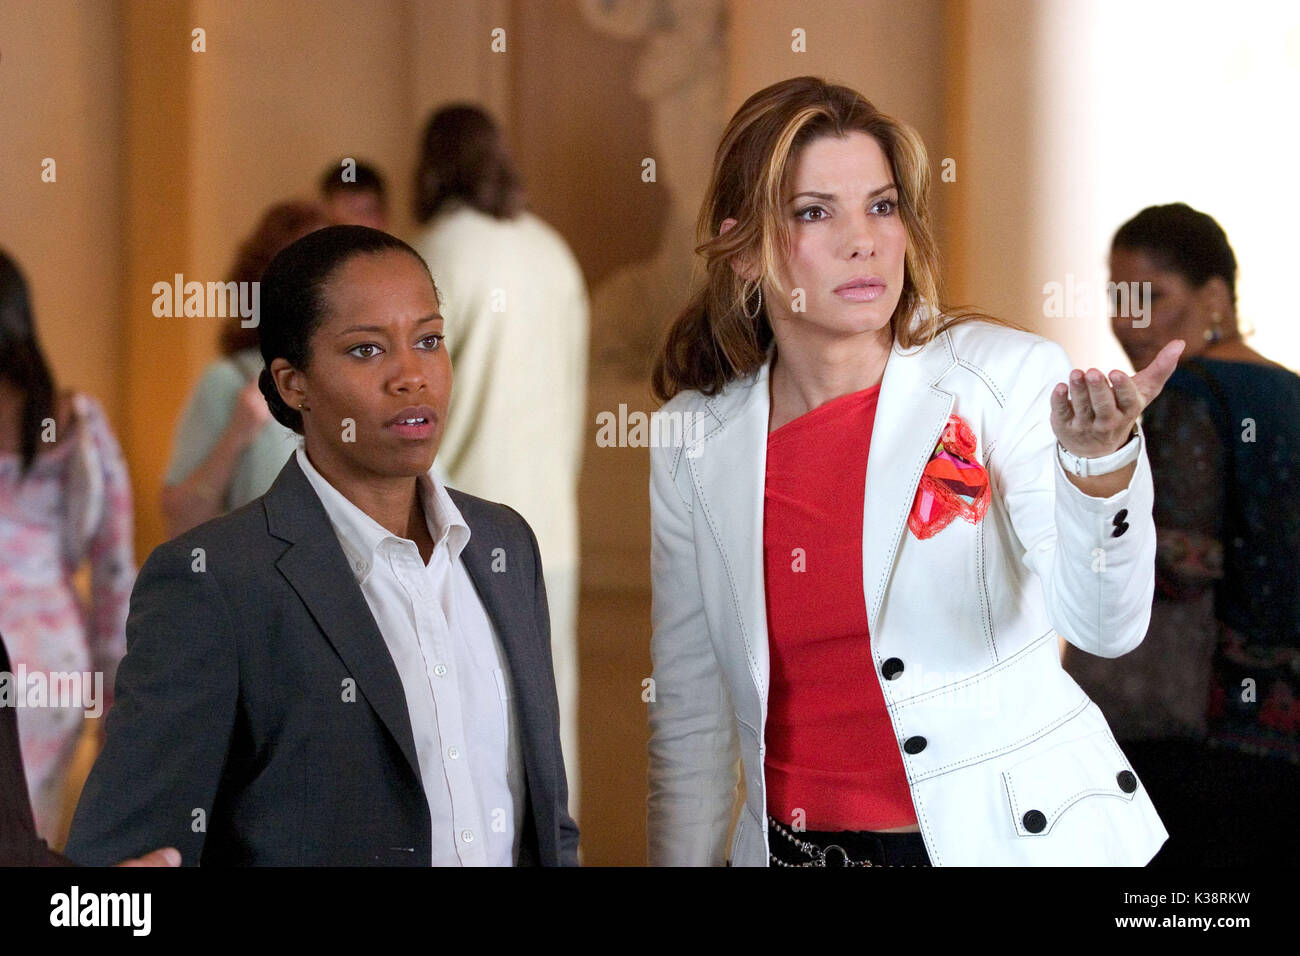 MISS CONGENIALITY 2 ARMED AND FABULOUS REGINA KING SANDRA BULLOCK Date 2005